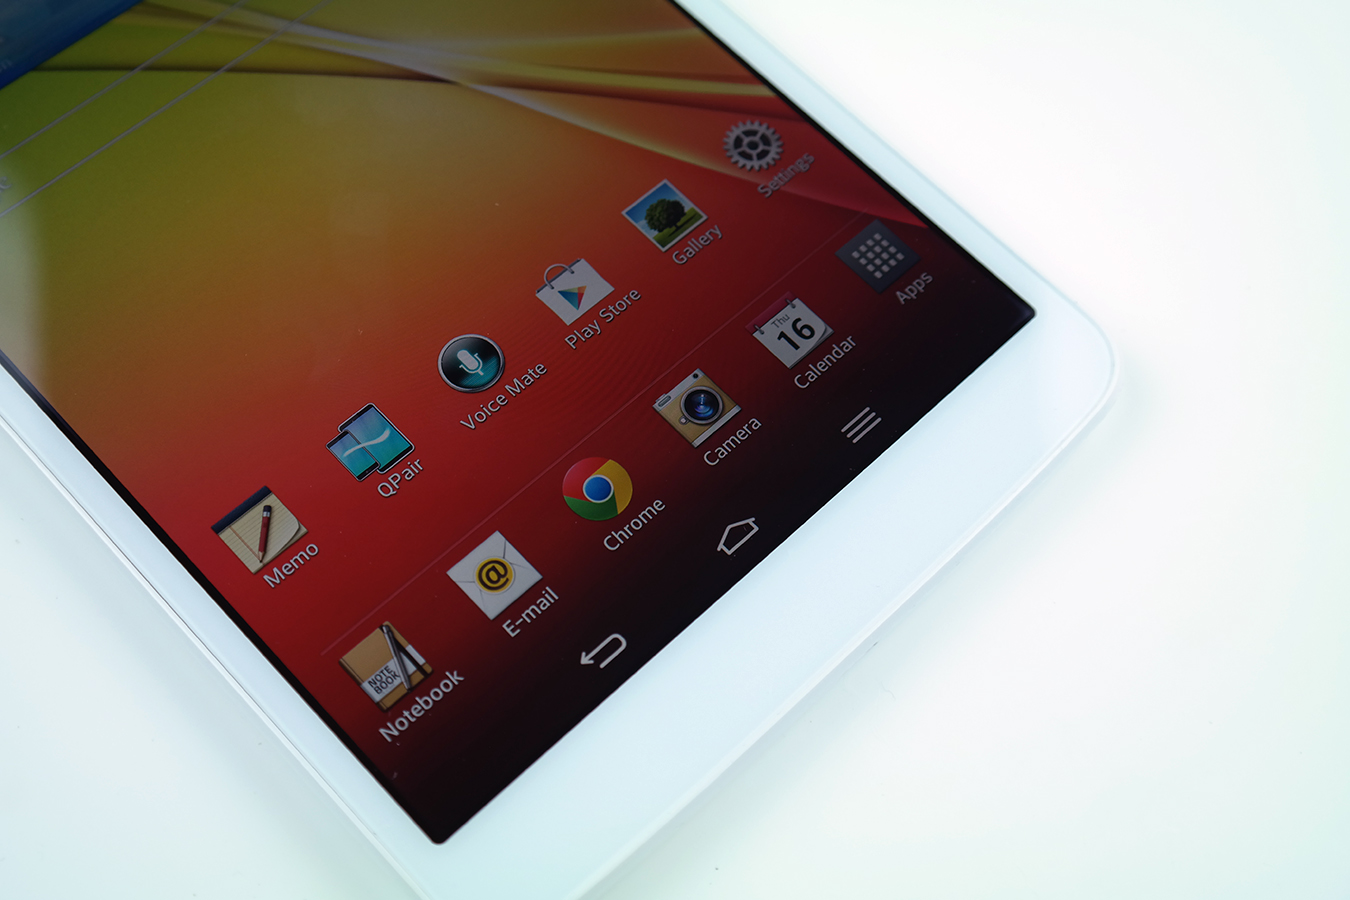 REVIEW LG GPad 8.3 Android